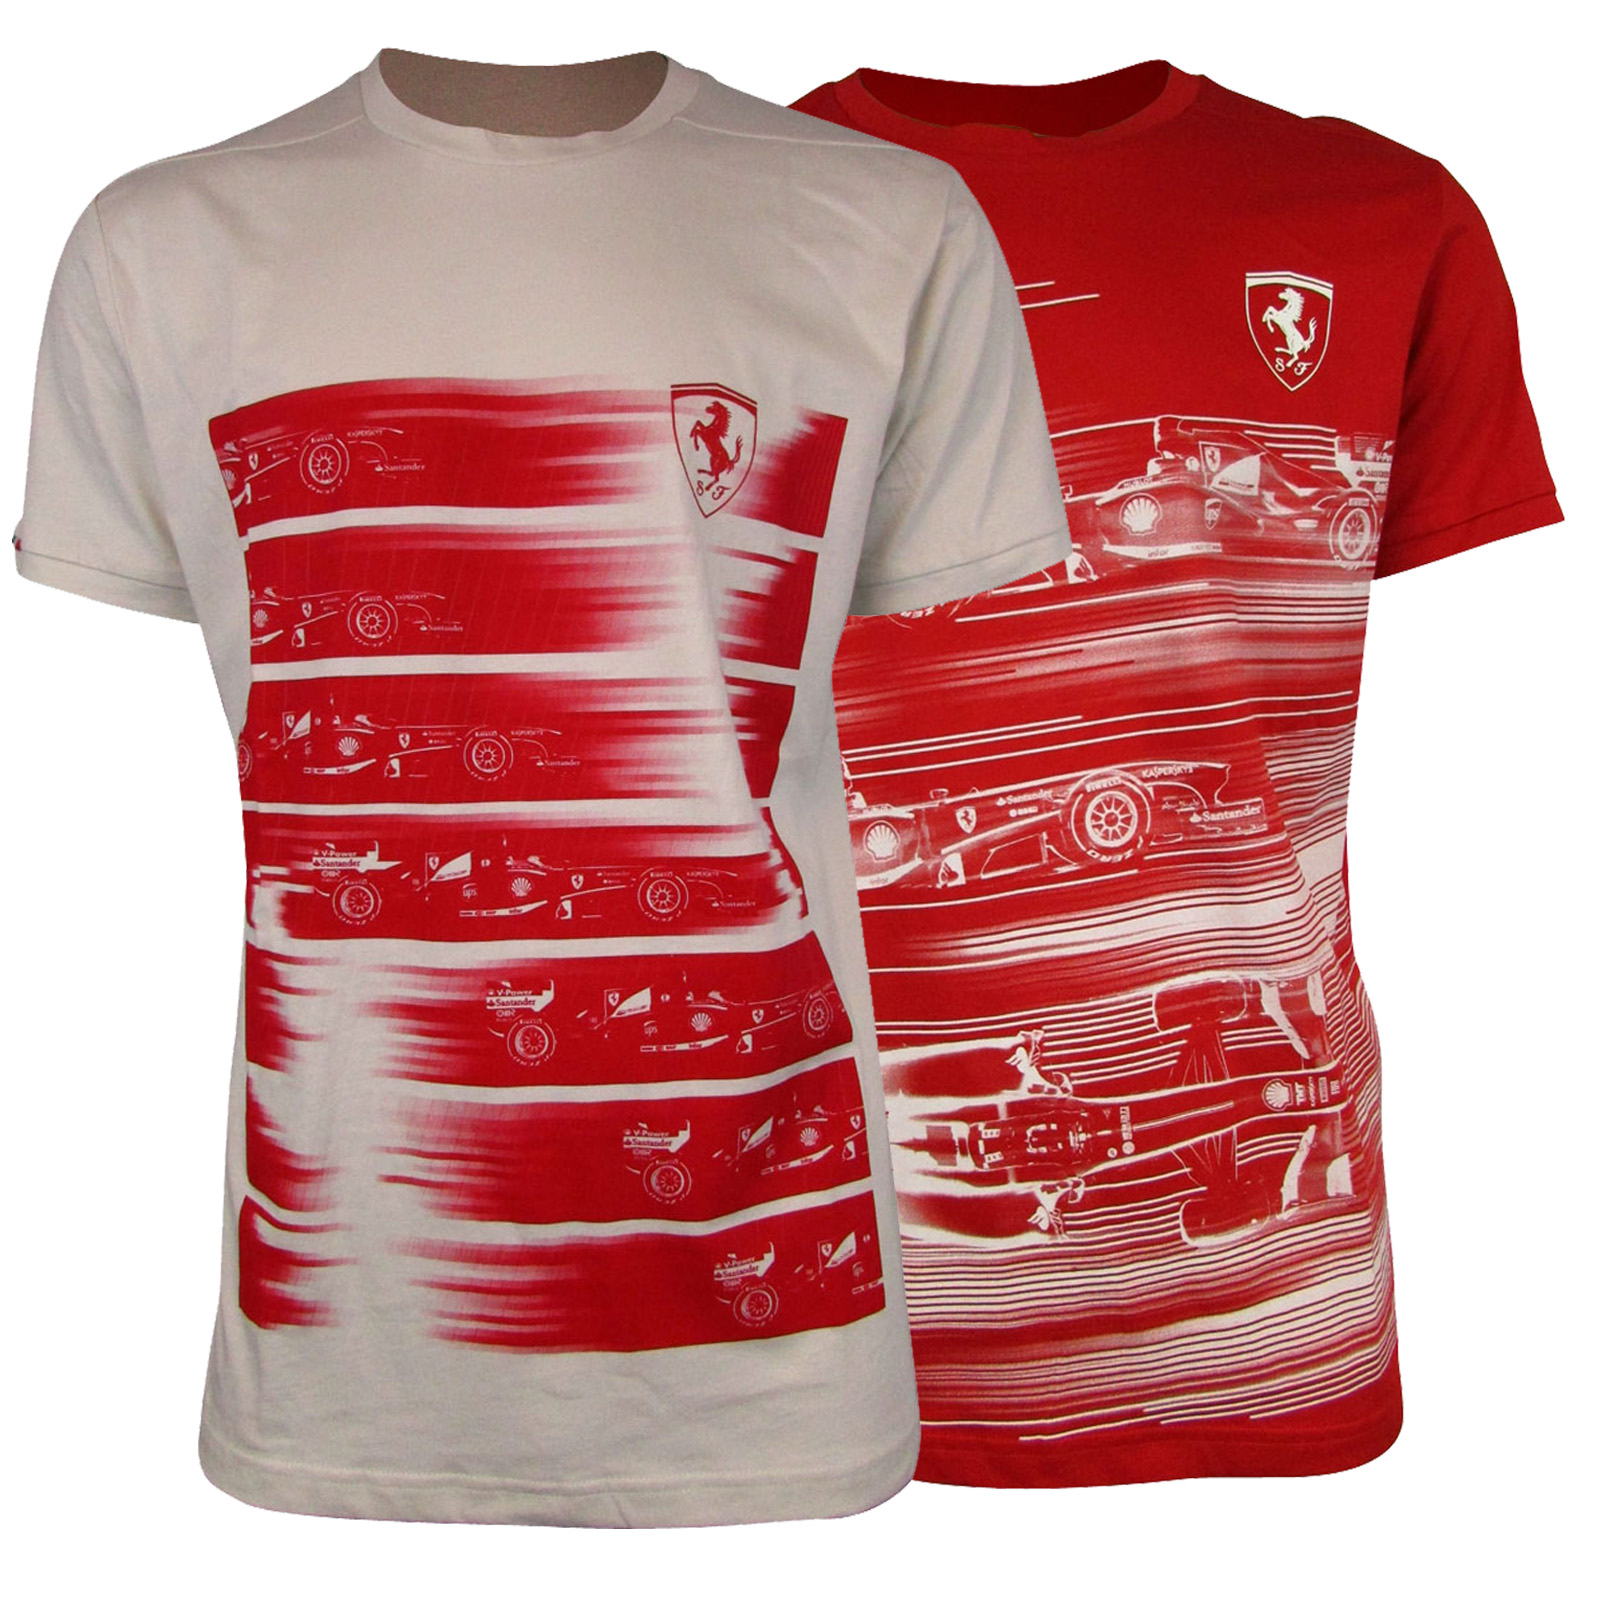 0b47a9005116 Details about Mens Puma SF Scuderia Ferrari Formula 1 One Replica T-Shirt  Top Graphic Tee